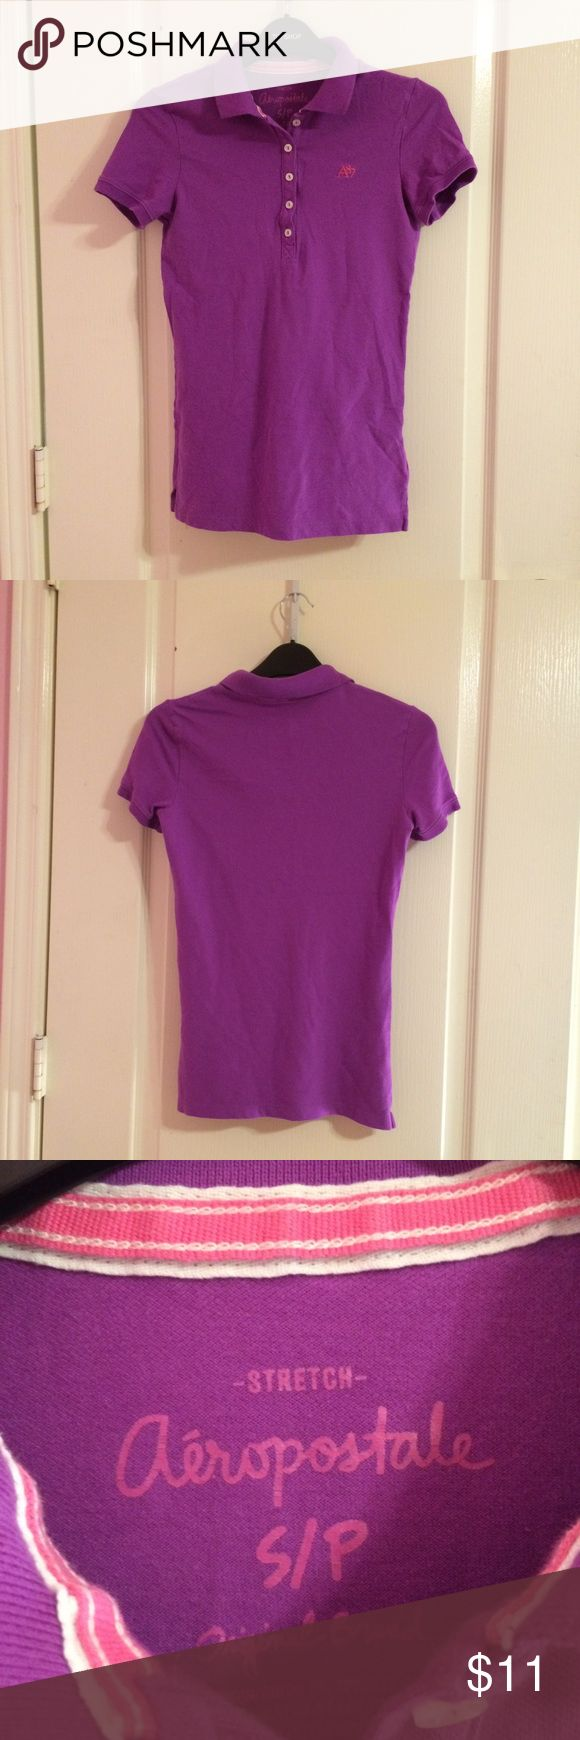 Aeropostale purple polo shirt Aeropostale purple polo shirt. Size small. Worn a few times and in great condition. Ask for try on pics or bundles. All items cheaper on merc. Aeropostale Tops Tees - Short Sleeve